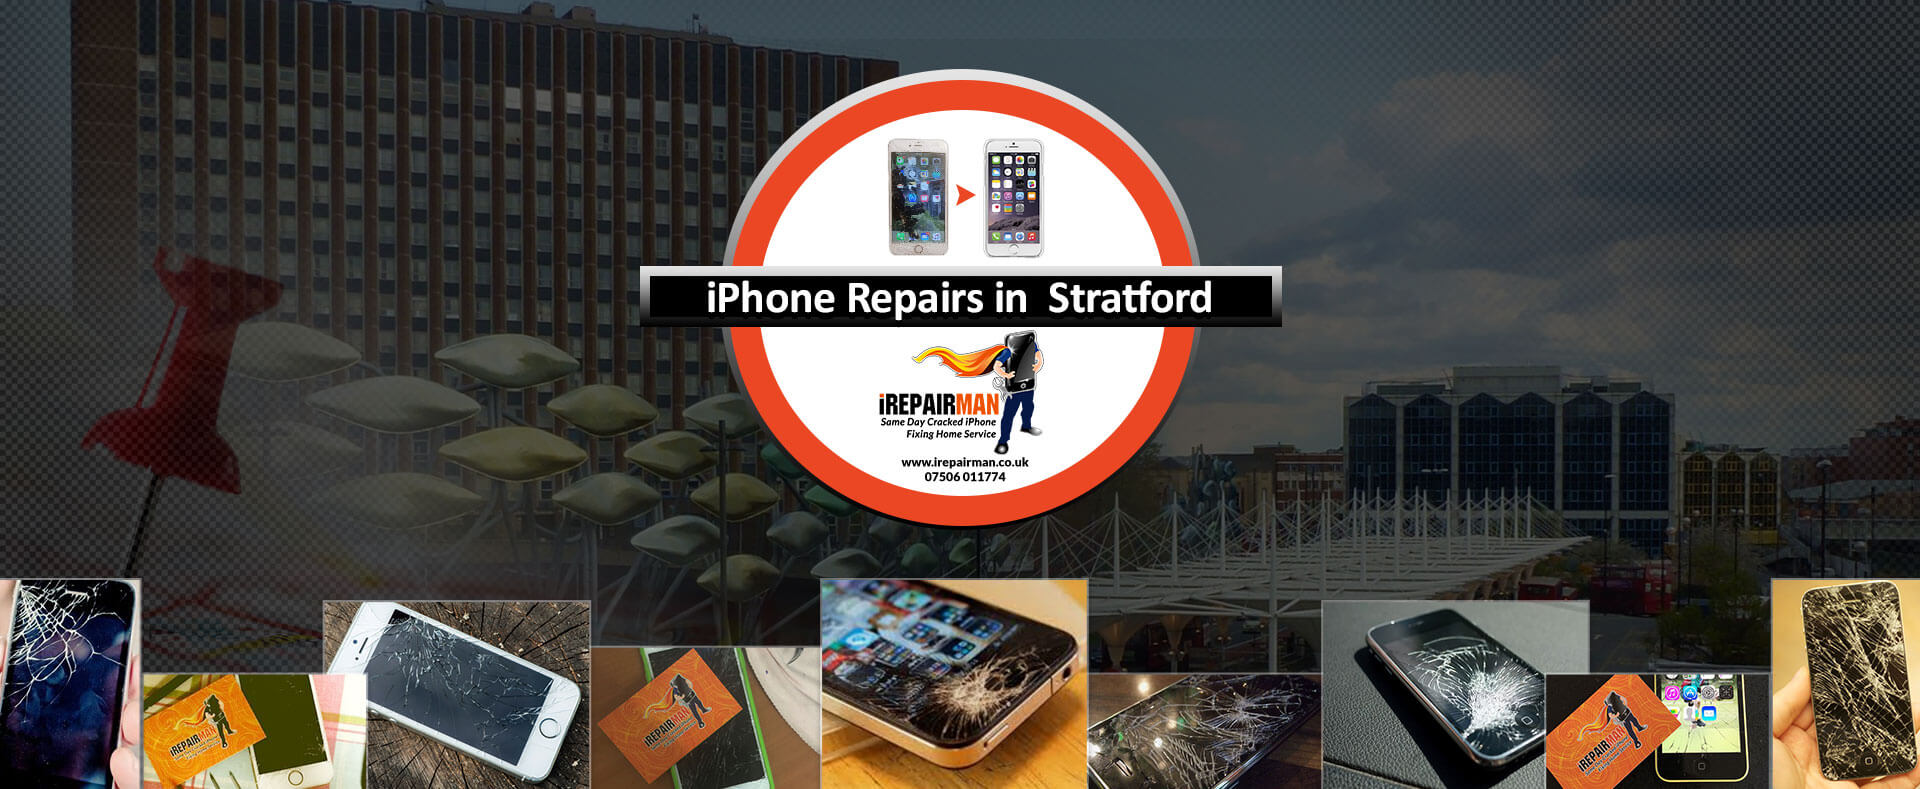 iPhone Repairs in Stratford